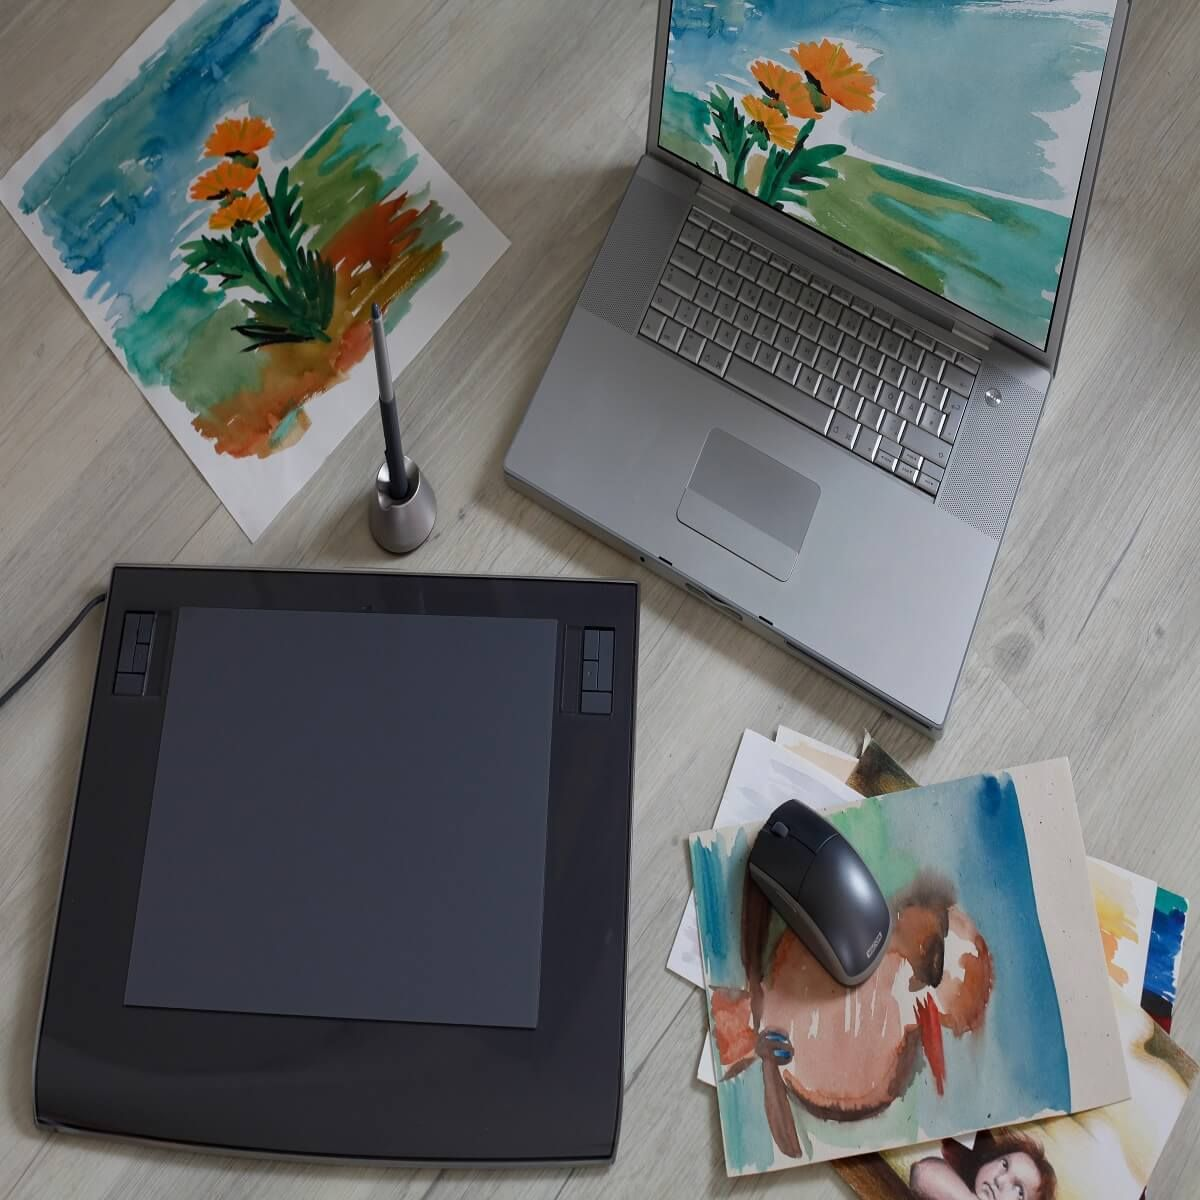 10 Best Painting Apps For Windows 10 You Just Need To Try In 2020 Digital Art Beginner Paint App Digital Art